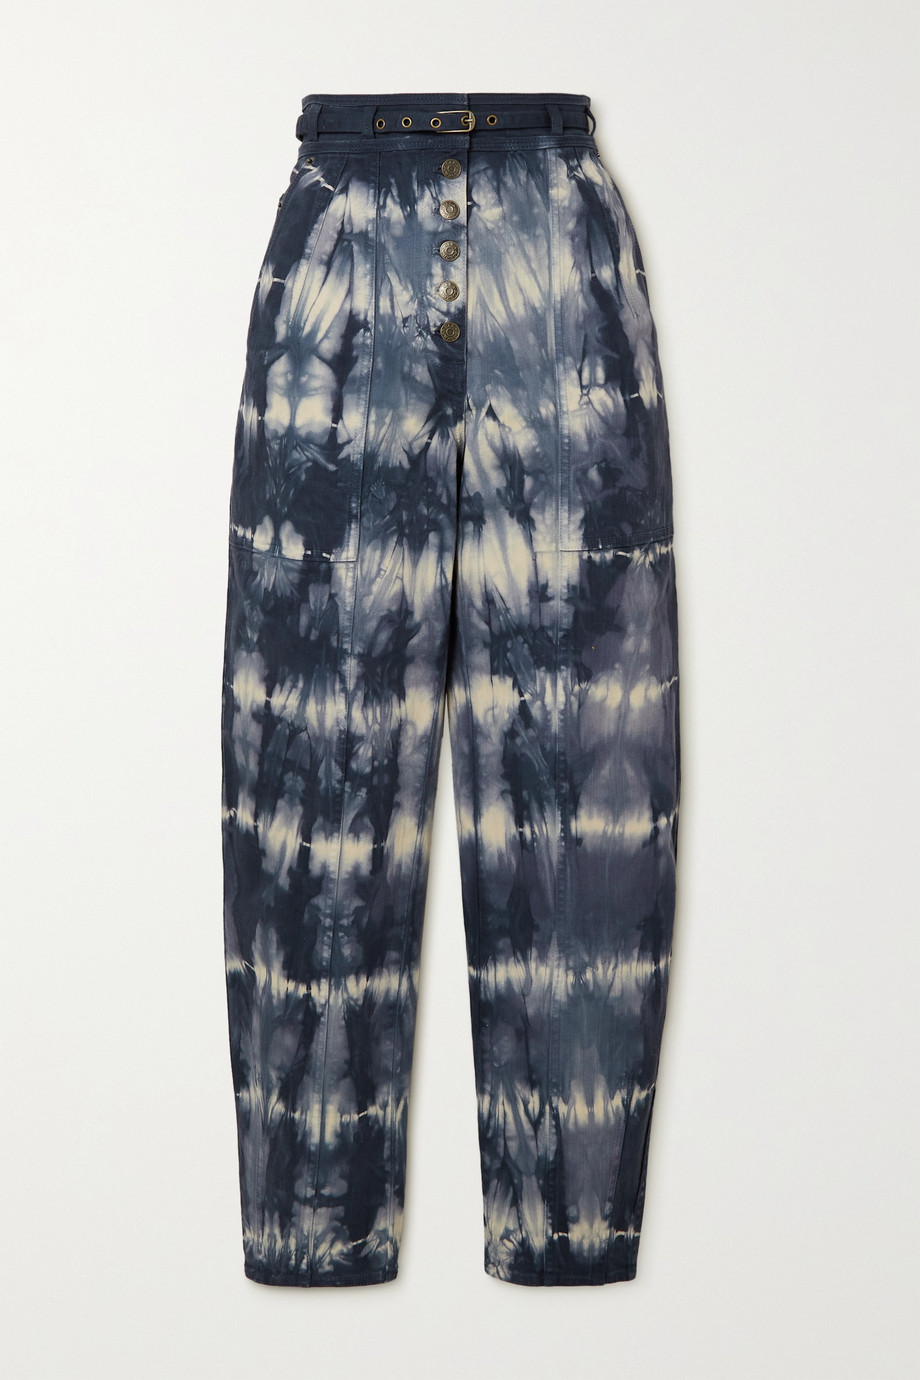 Ulla Johnson Apollo belted tie-dyed high-rise tapered jeans